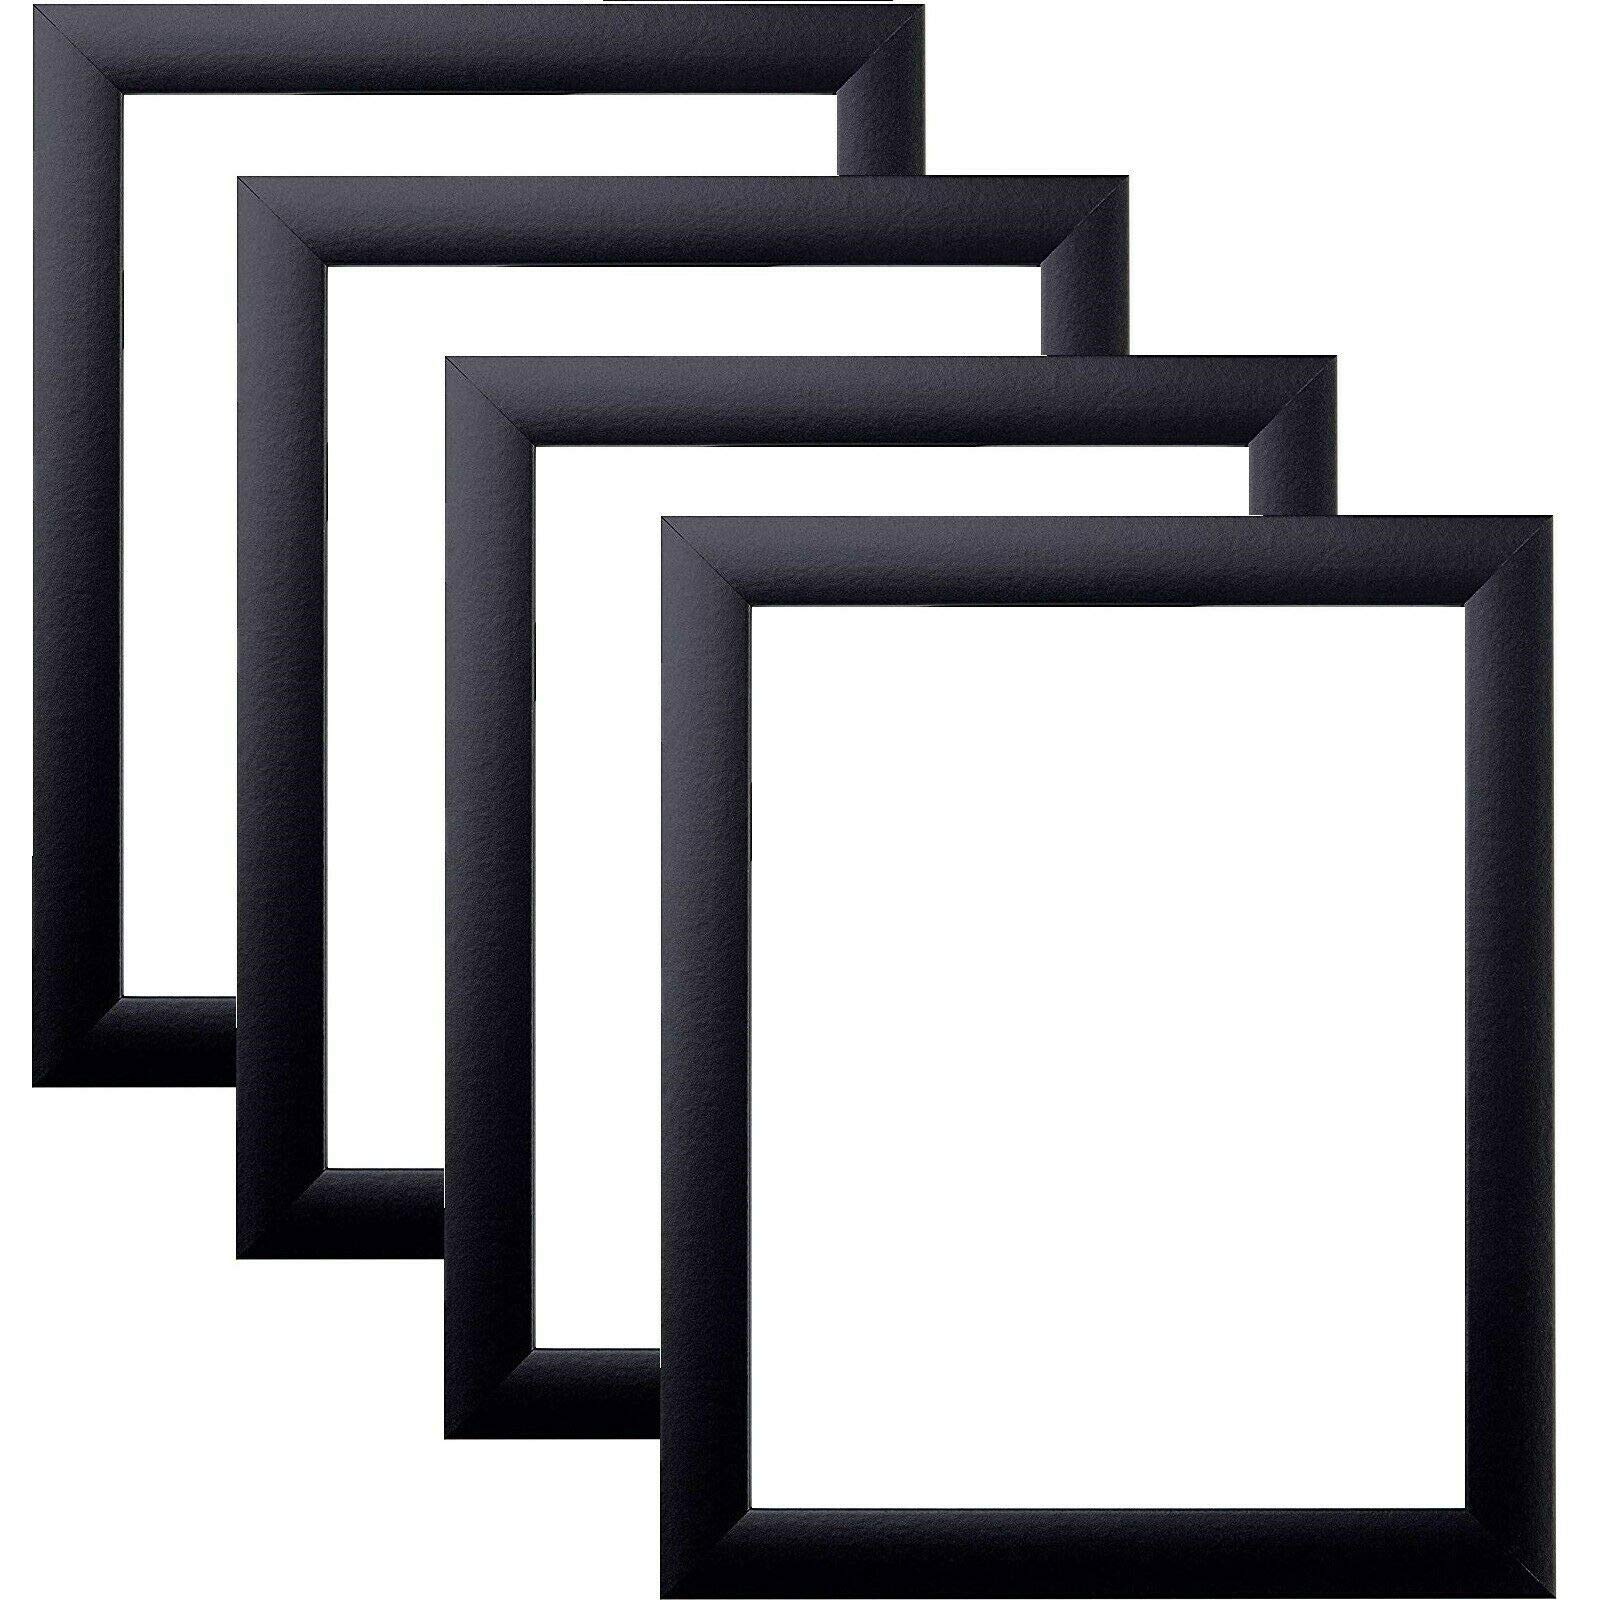 US Art Frames 17 x 22 Black Nugget 1 Inch, Wood Composite MDF Picture Photo Poster Frame, Set of 4